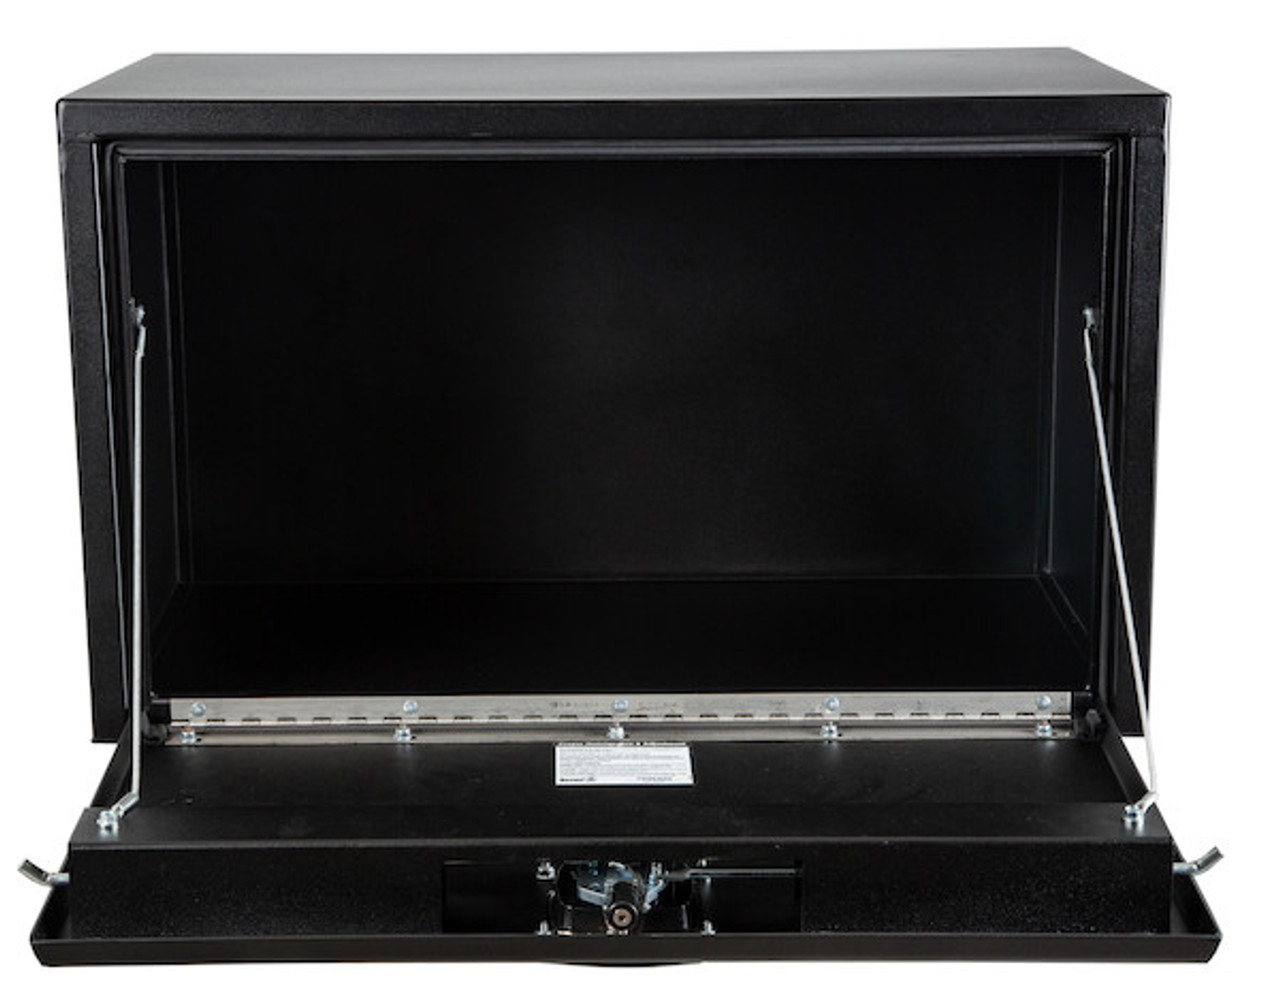 "1732503 BUYERS PRODUCTS TEXTURED MATTE BLACK STEEL UNDERBODY TRUCK TOOLBOX WITH 3-POINT LATCH 18""Hx18""Dx30""W Picture # 4"